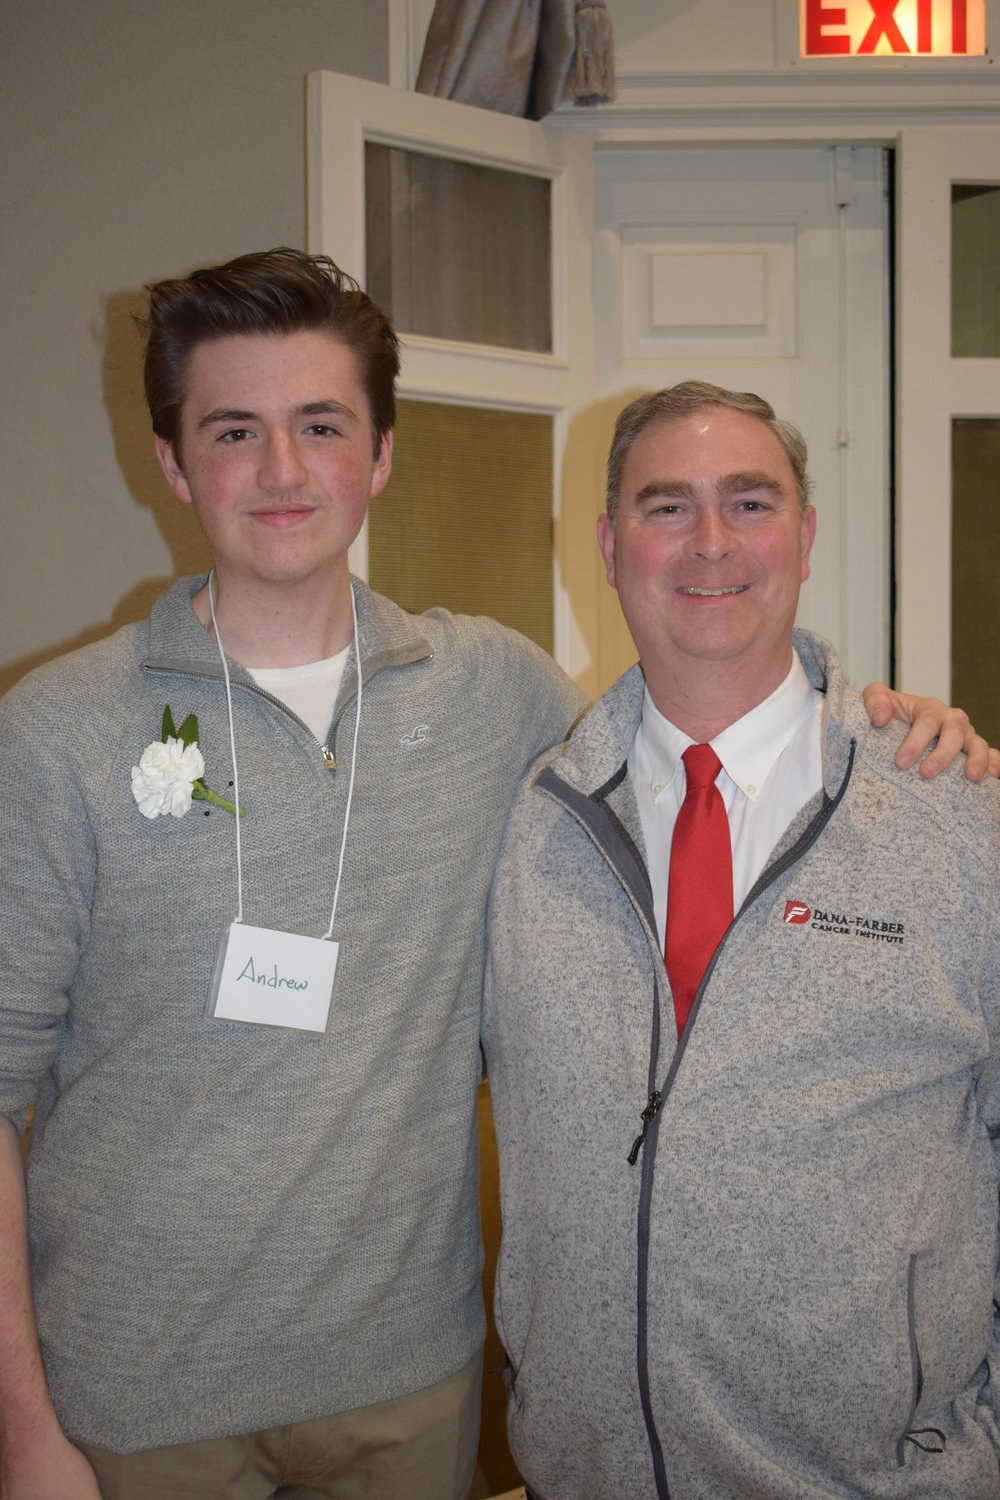 The Honorable State Representative Brad Hill is featured in one of the pictures with the Masters of Ceremony for the evenings event  Andrew Valianti a senior at Triton Regional High School in Newbury, MA.